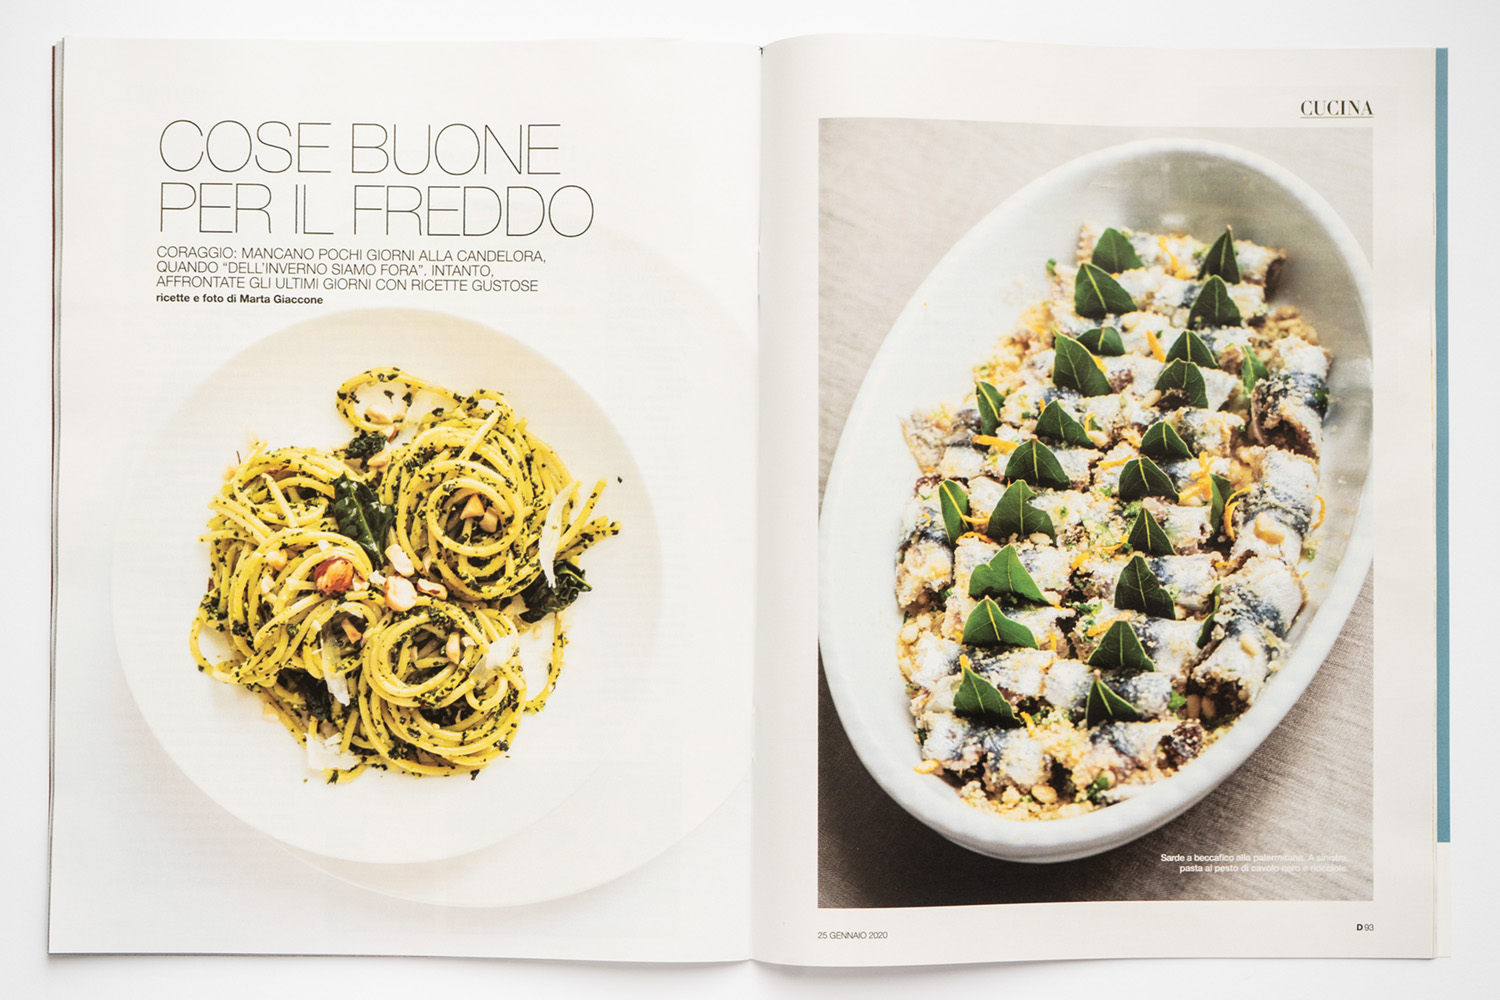 Food editorial on D la Repubblica (Jan 25th, 2020) by Marta Giaccone